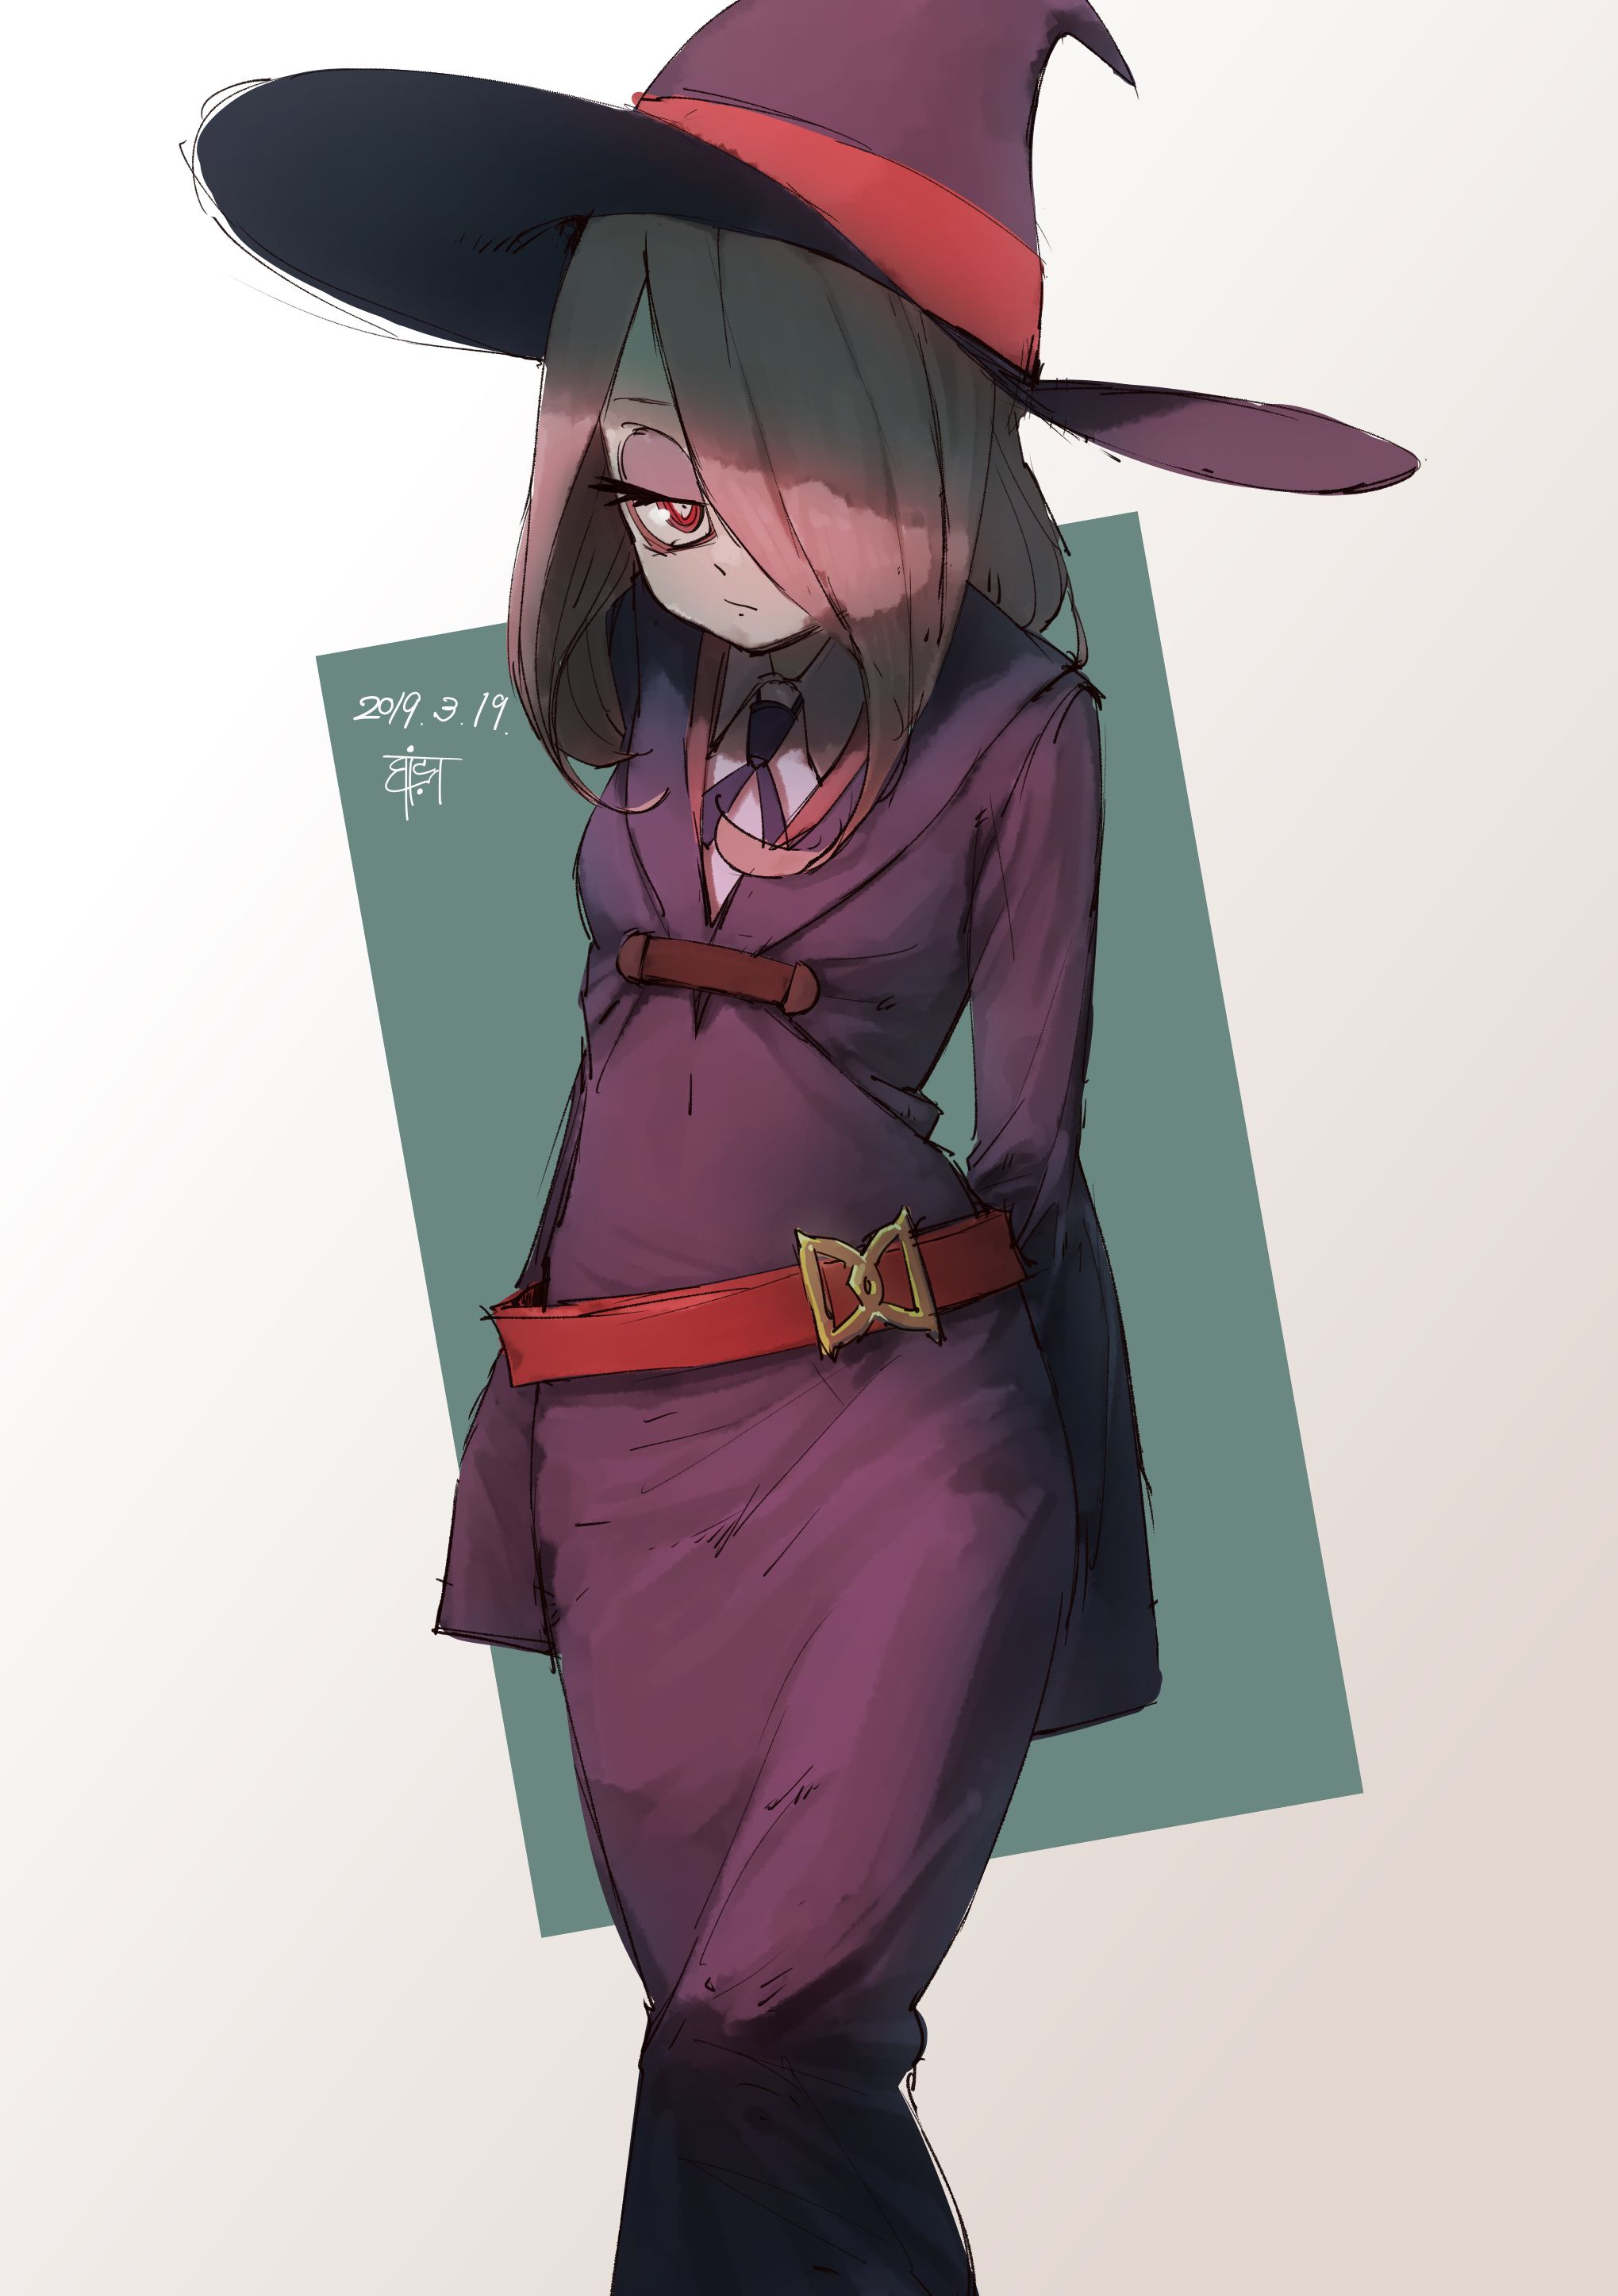 Pin en LWA, Little Witch Academia